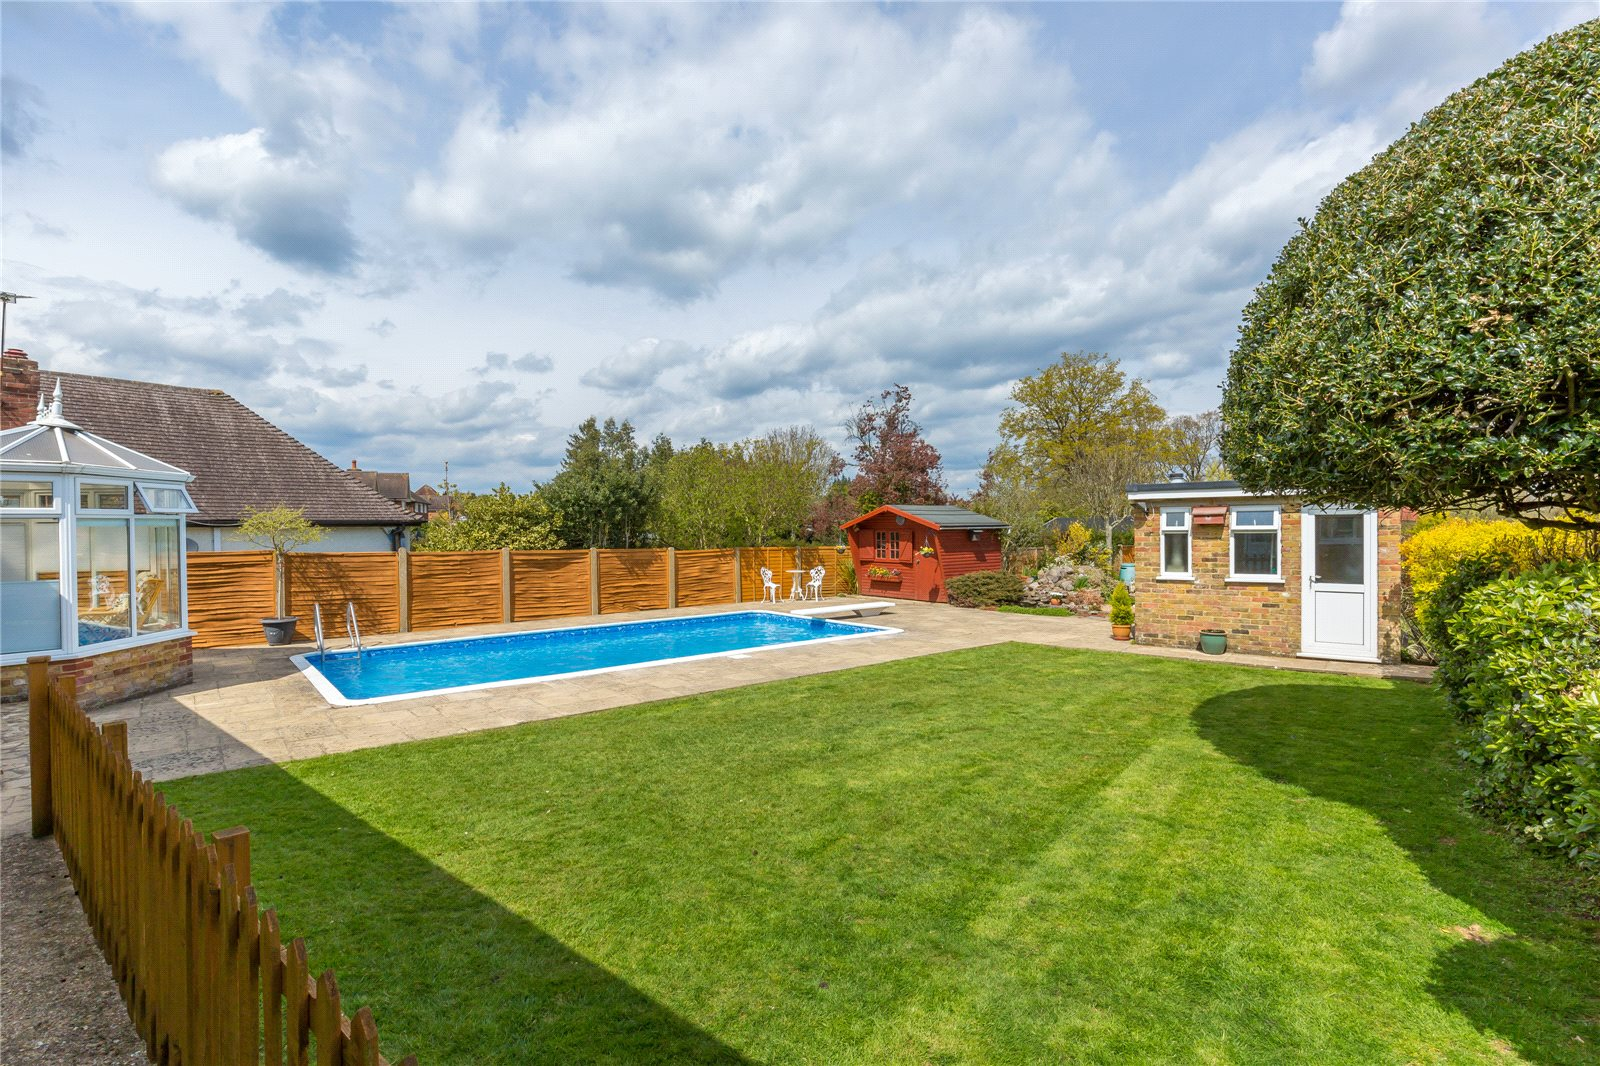 Additional photo for property listing at Denham Lane, Chalfont St Peter, Buckinghamshire, SL9 Chalfont St Peter, Inglaterra